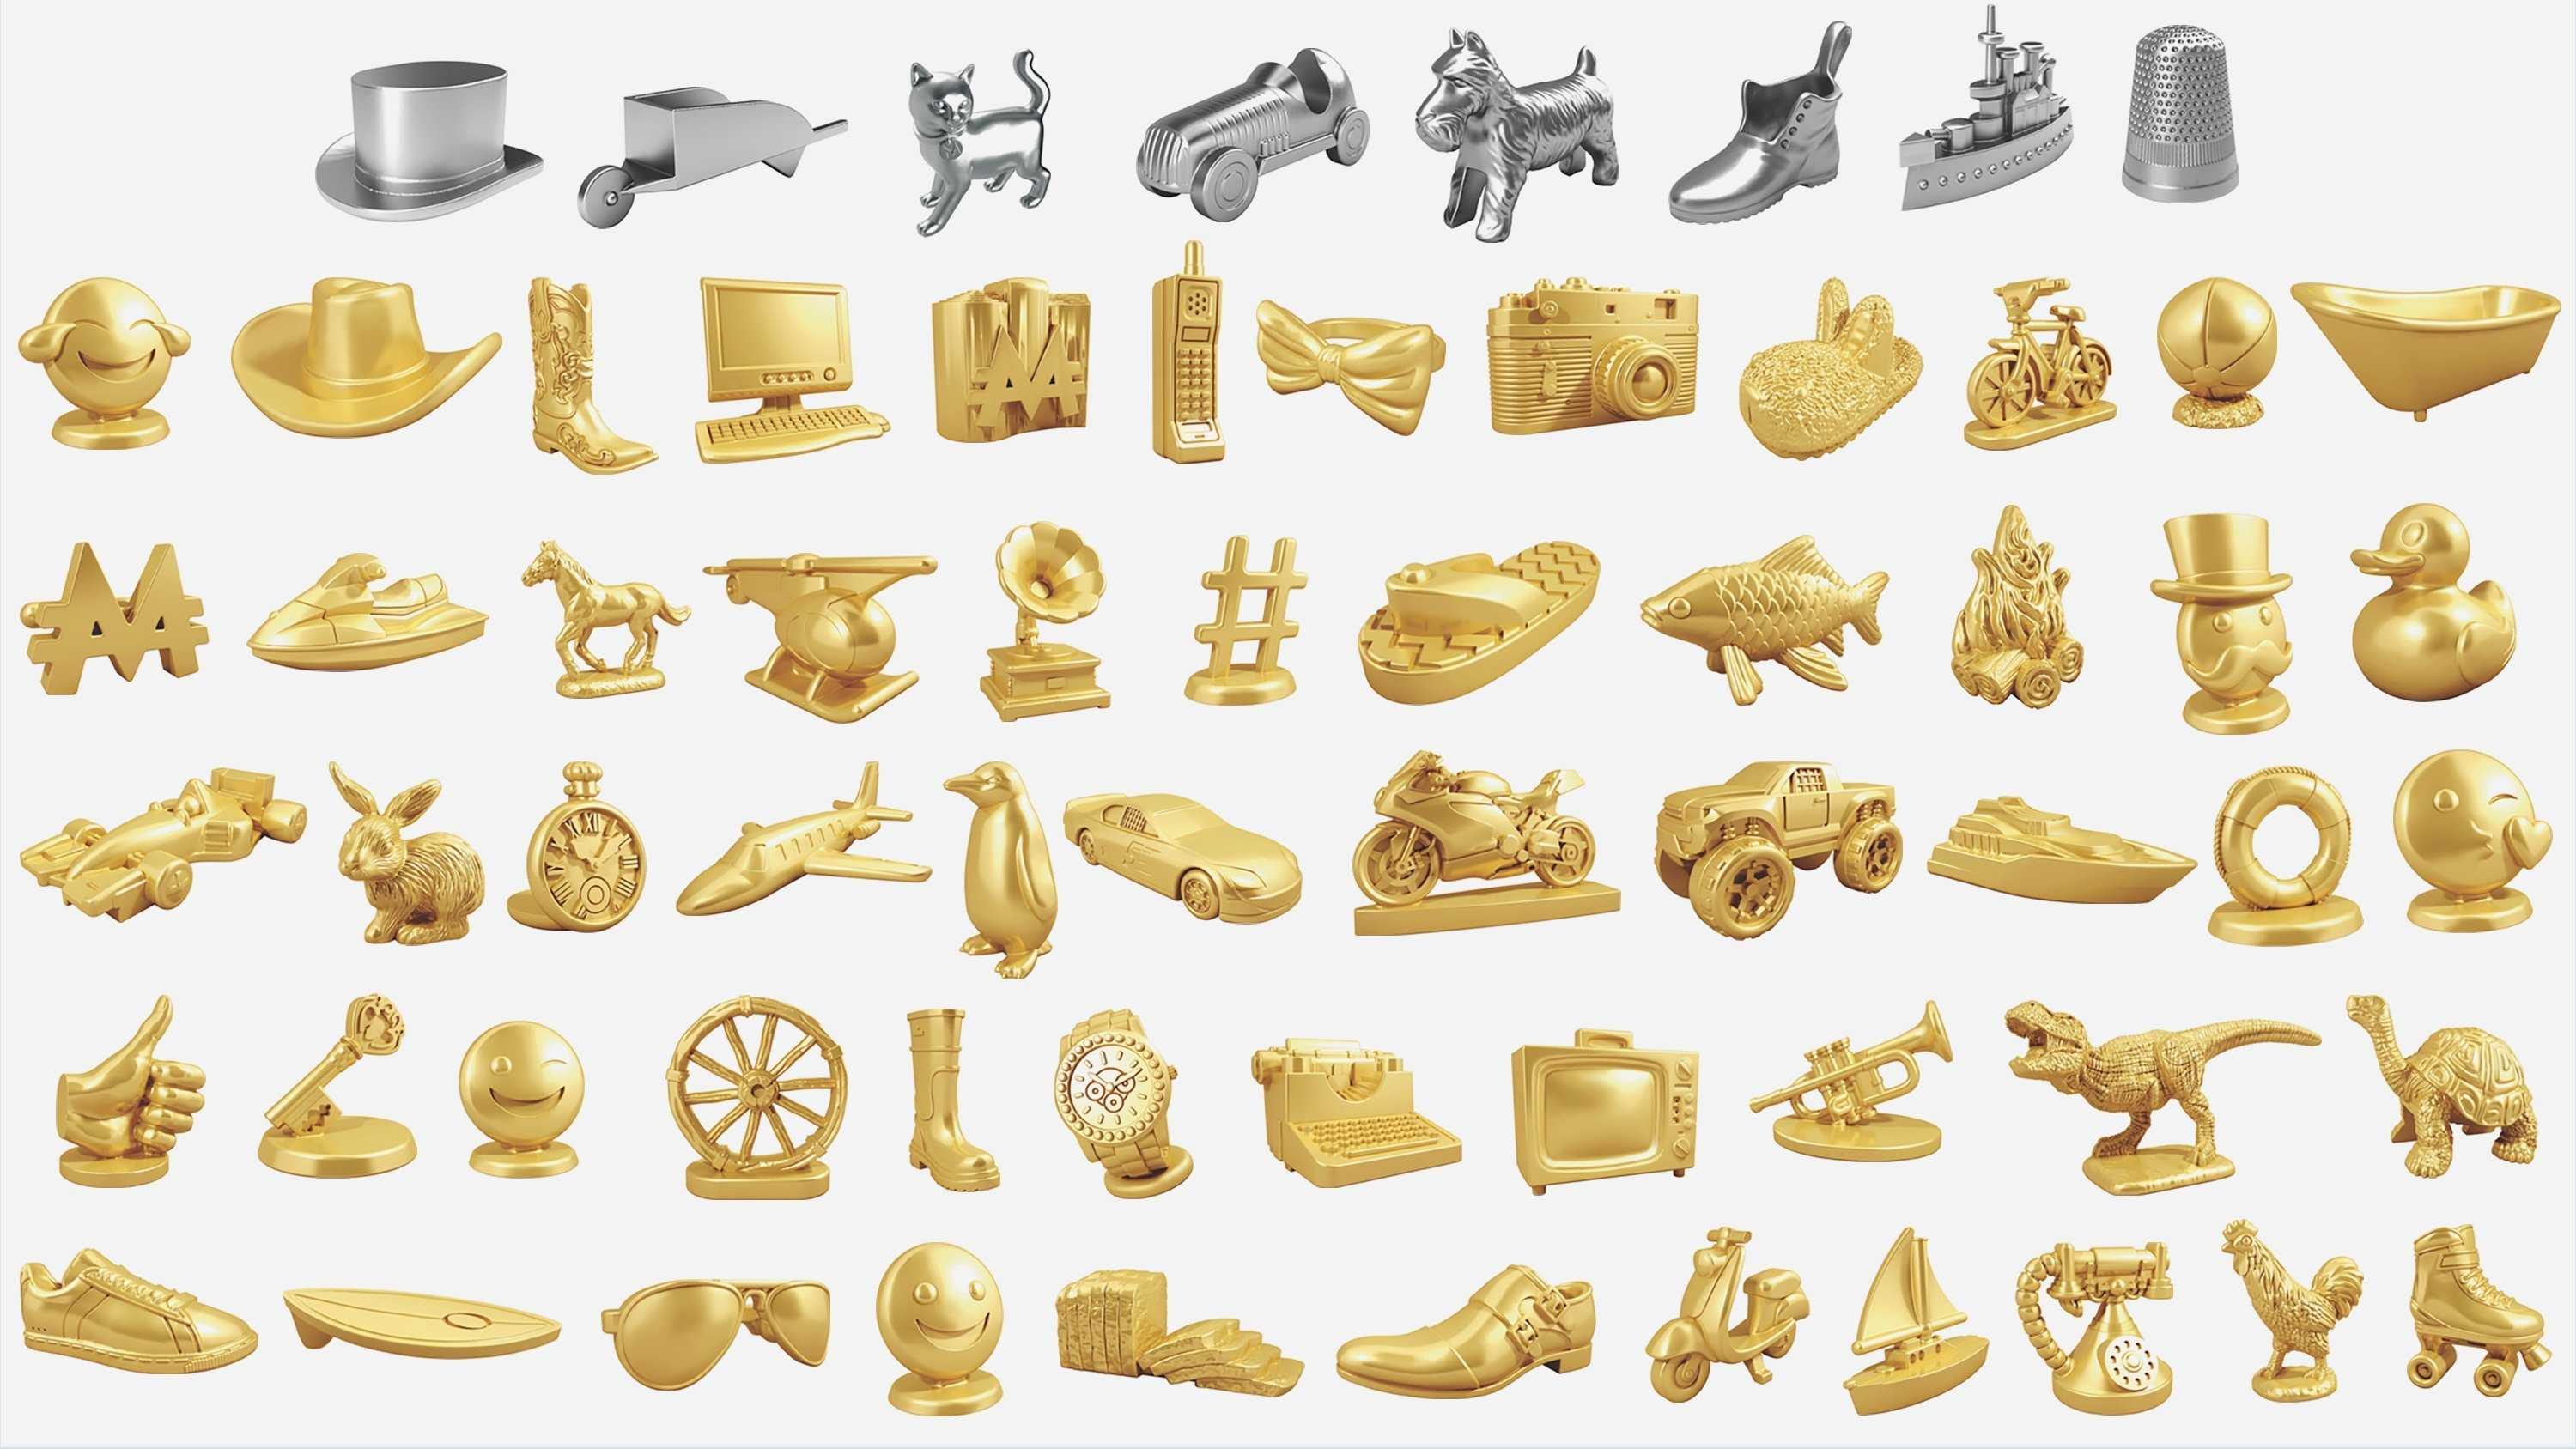 Monopoly's game pieces may look very different the next time you play.